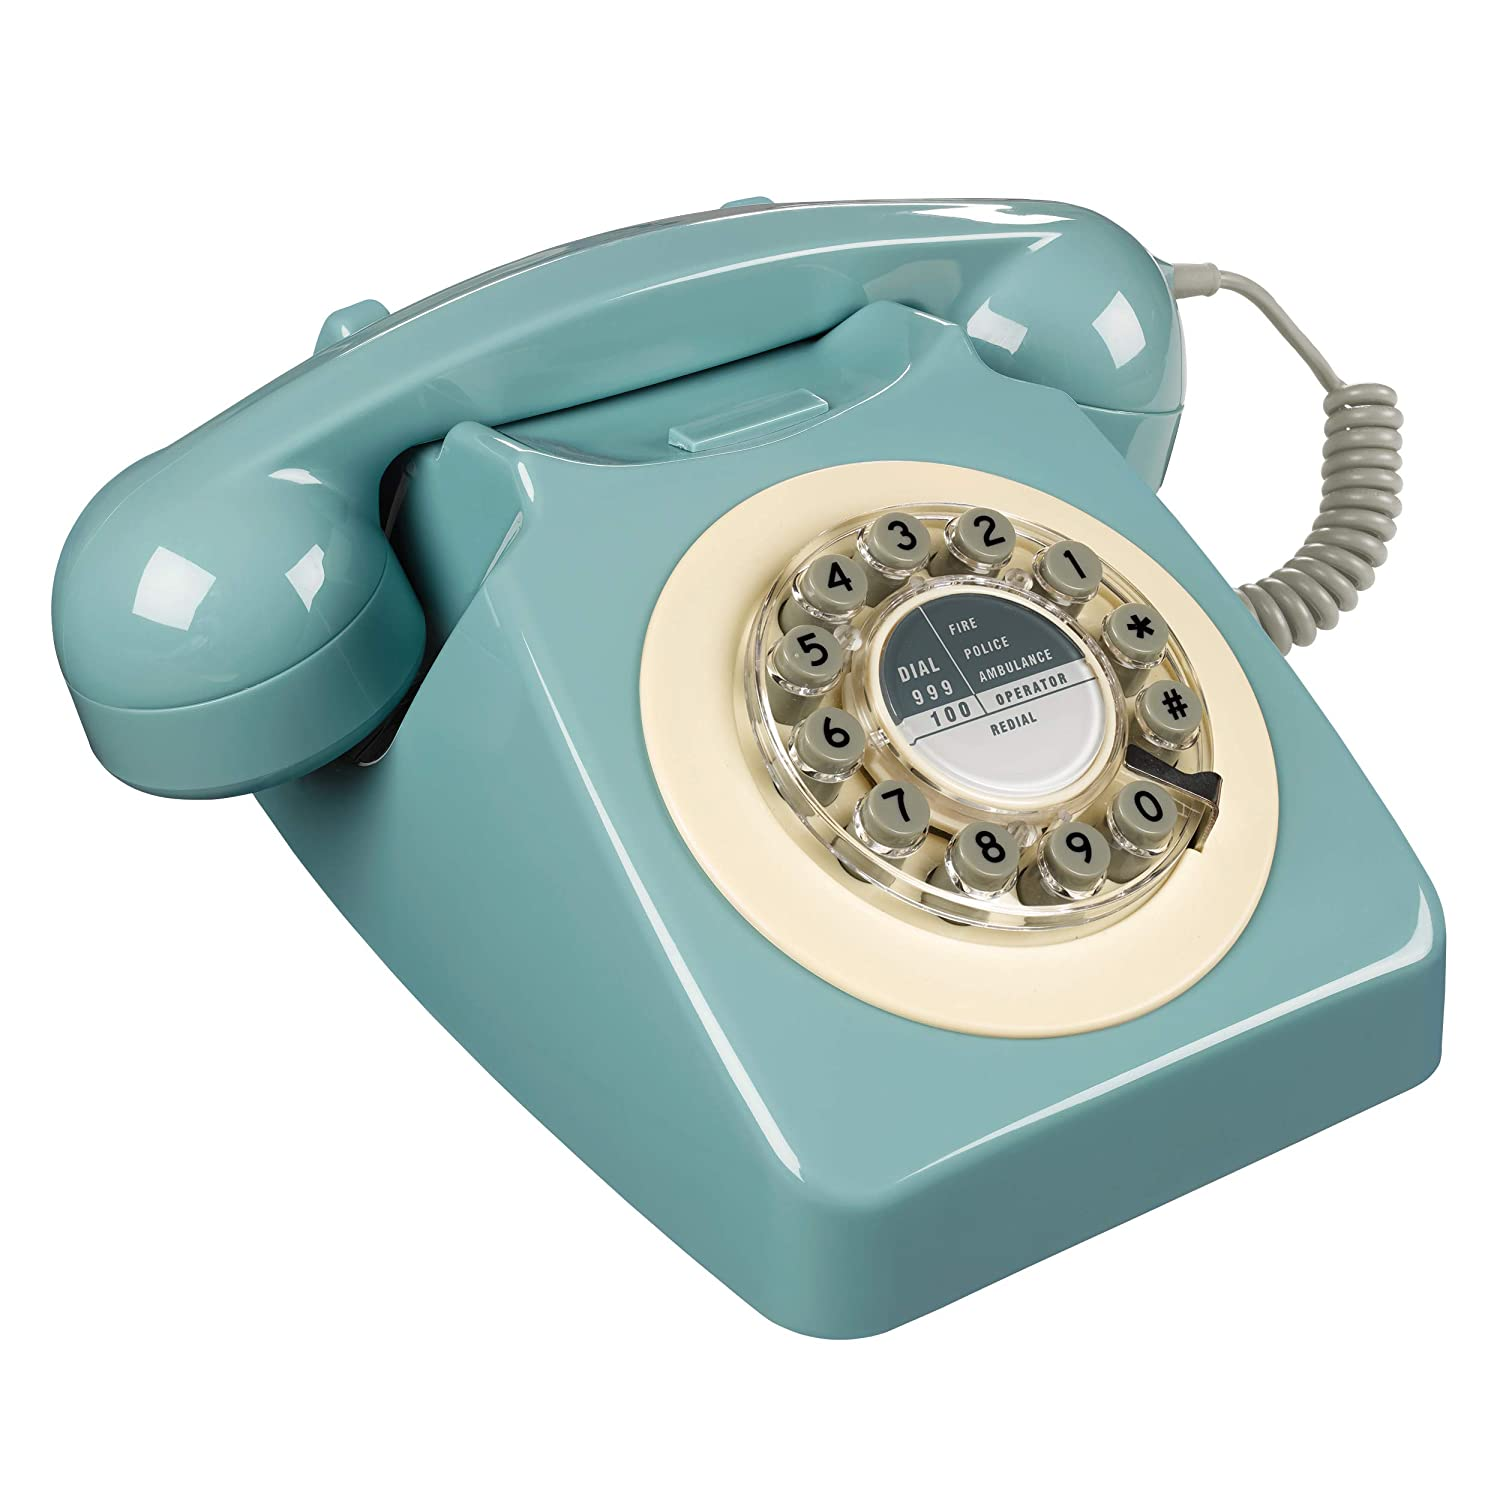 Wild Wood Rotary Design Retro Landline Phone for Home, French Blue Wild and Wolf TP042